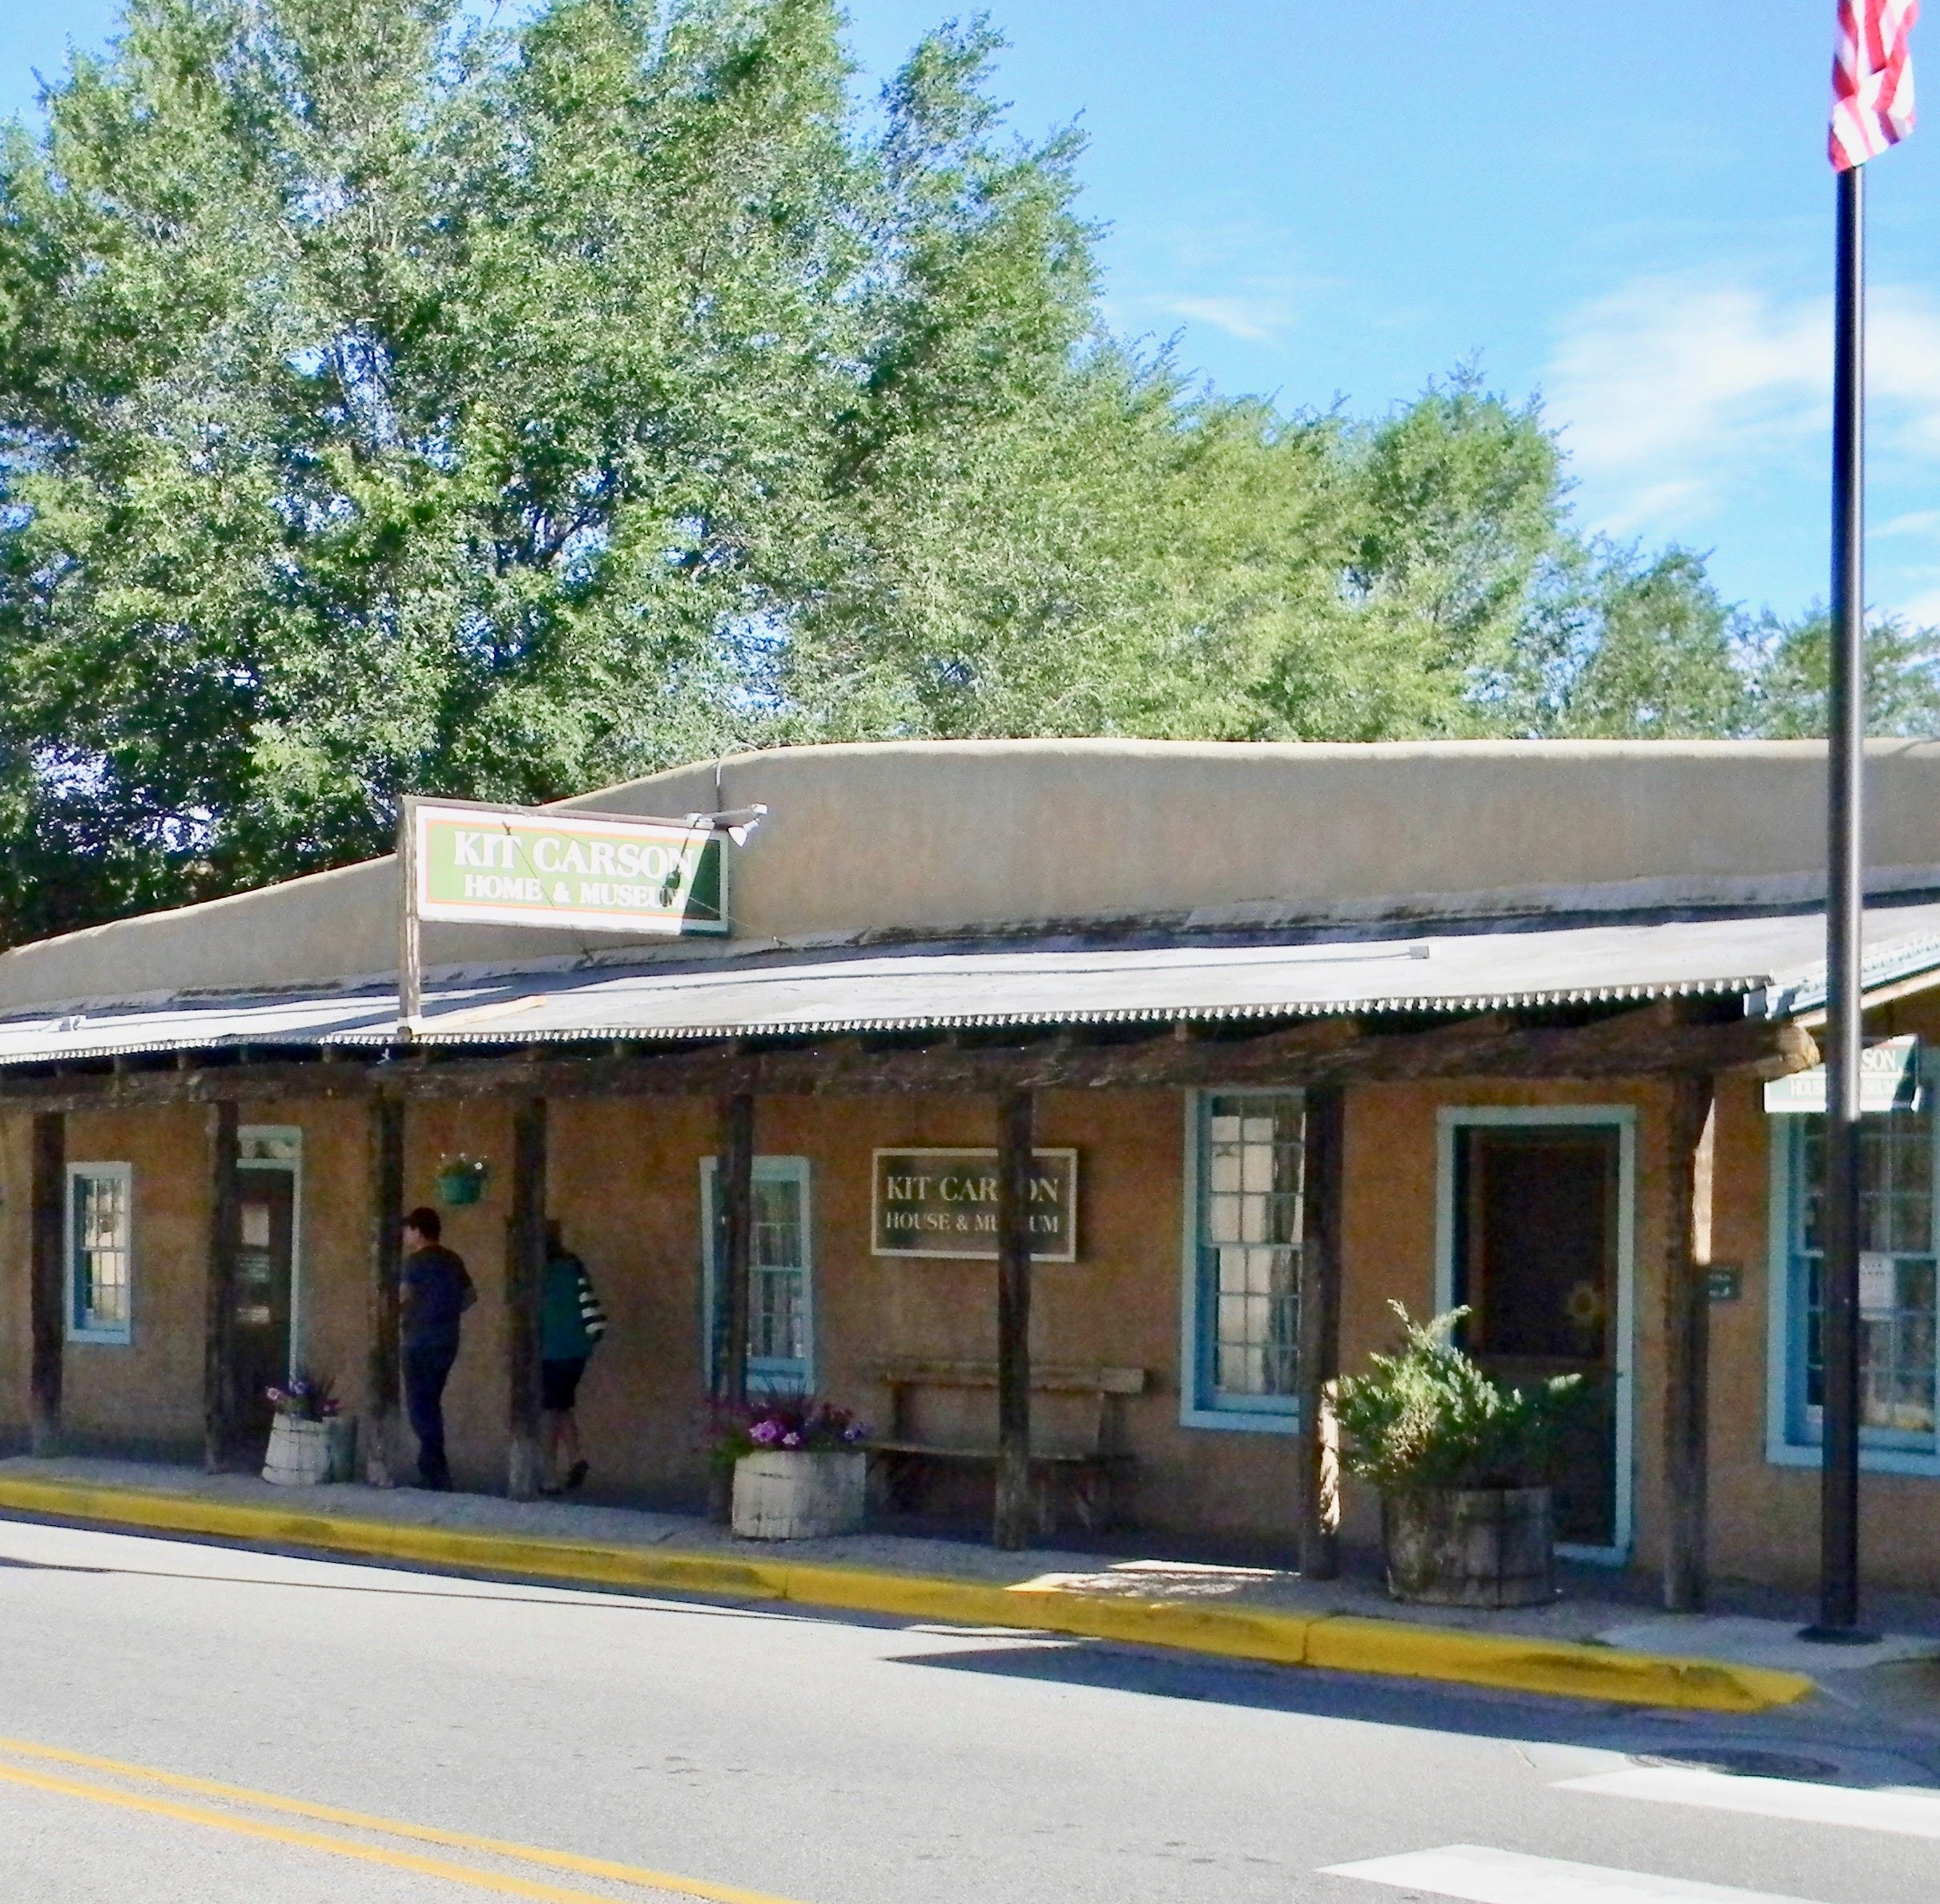 Kit Carson's home: Taos wouldn't be the same without it